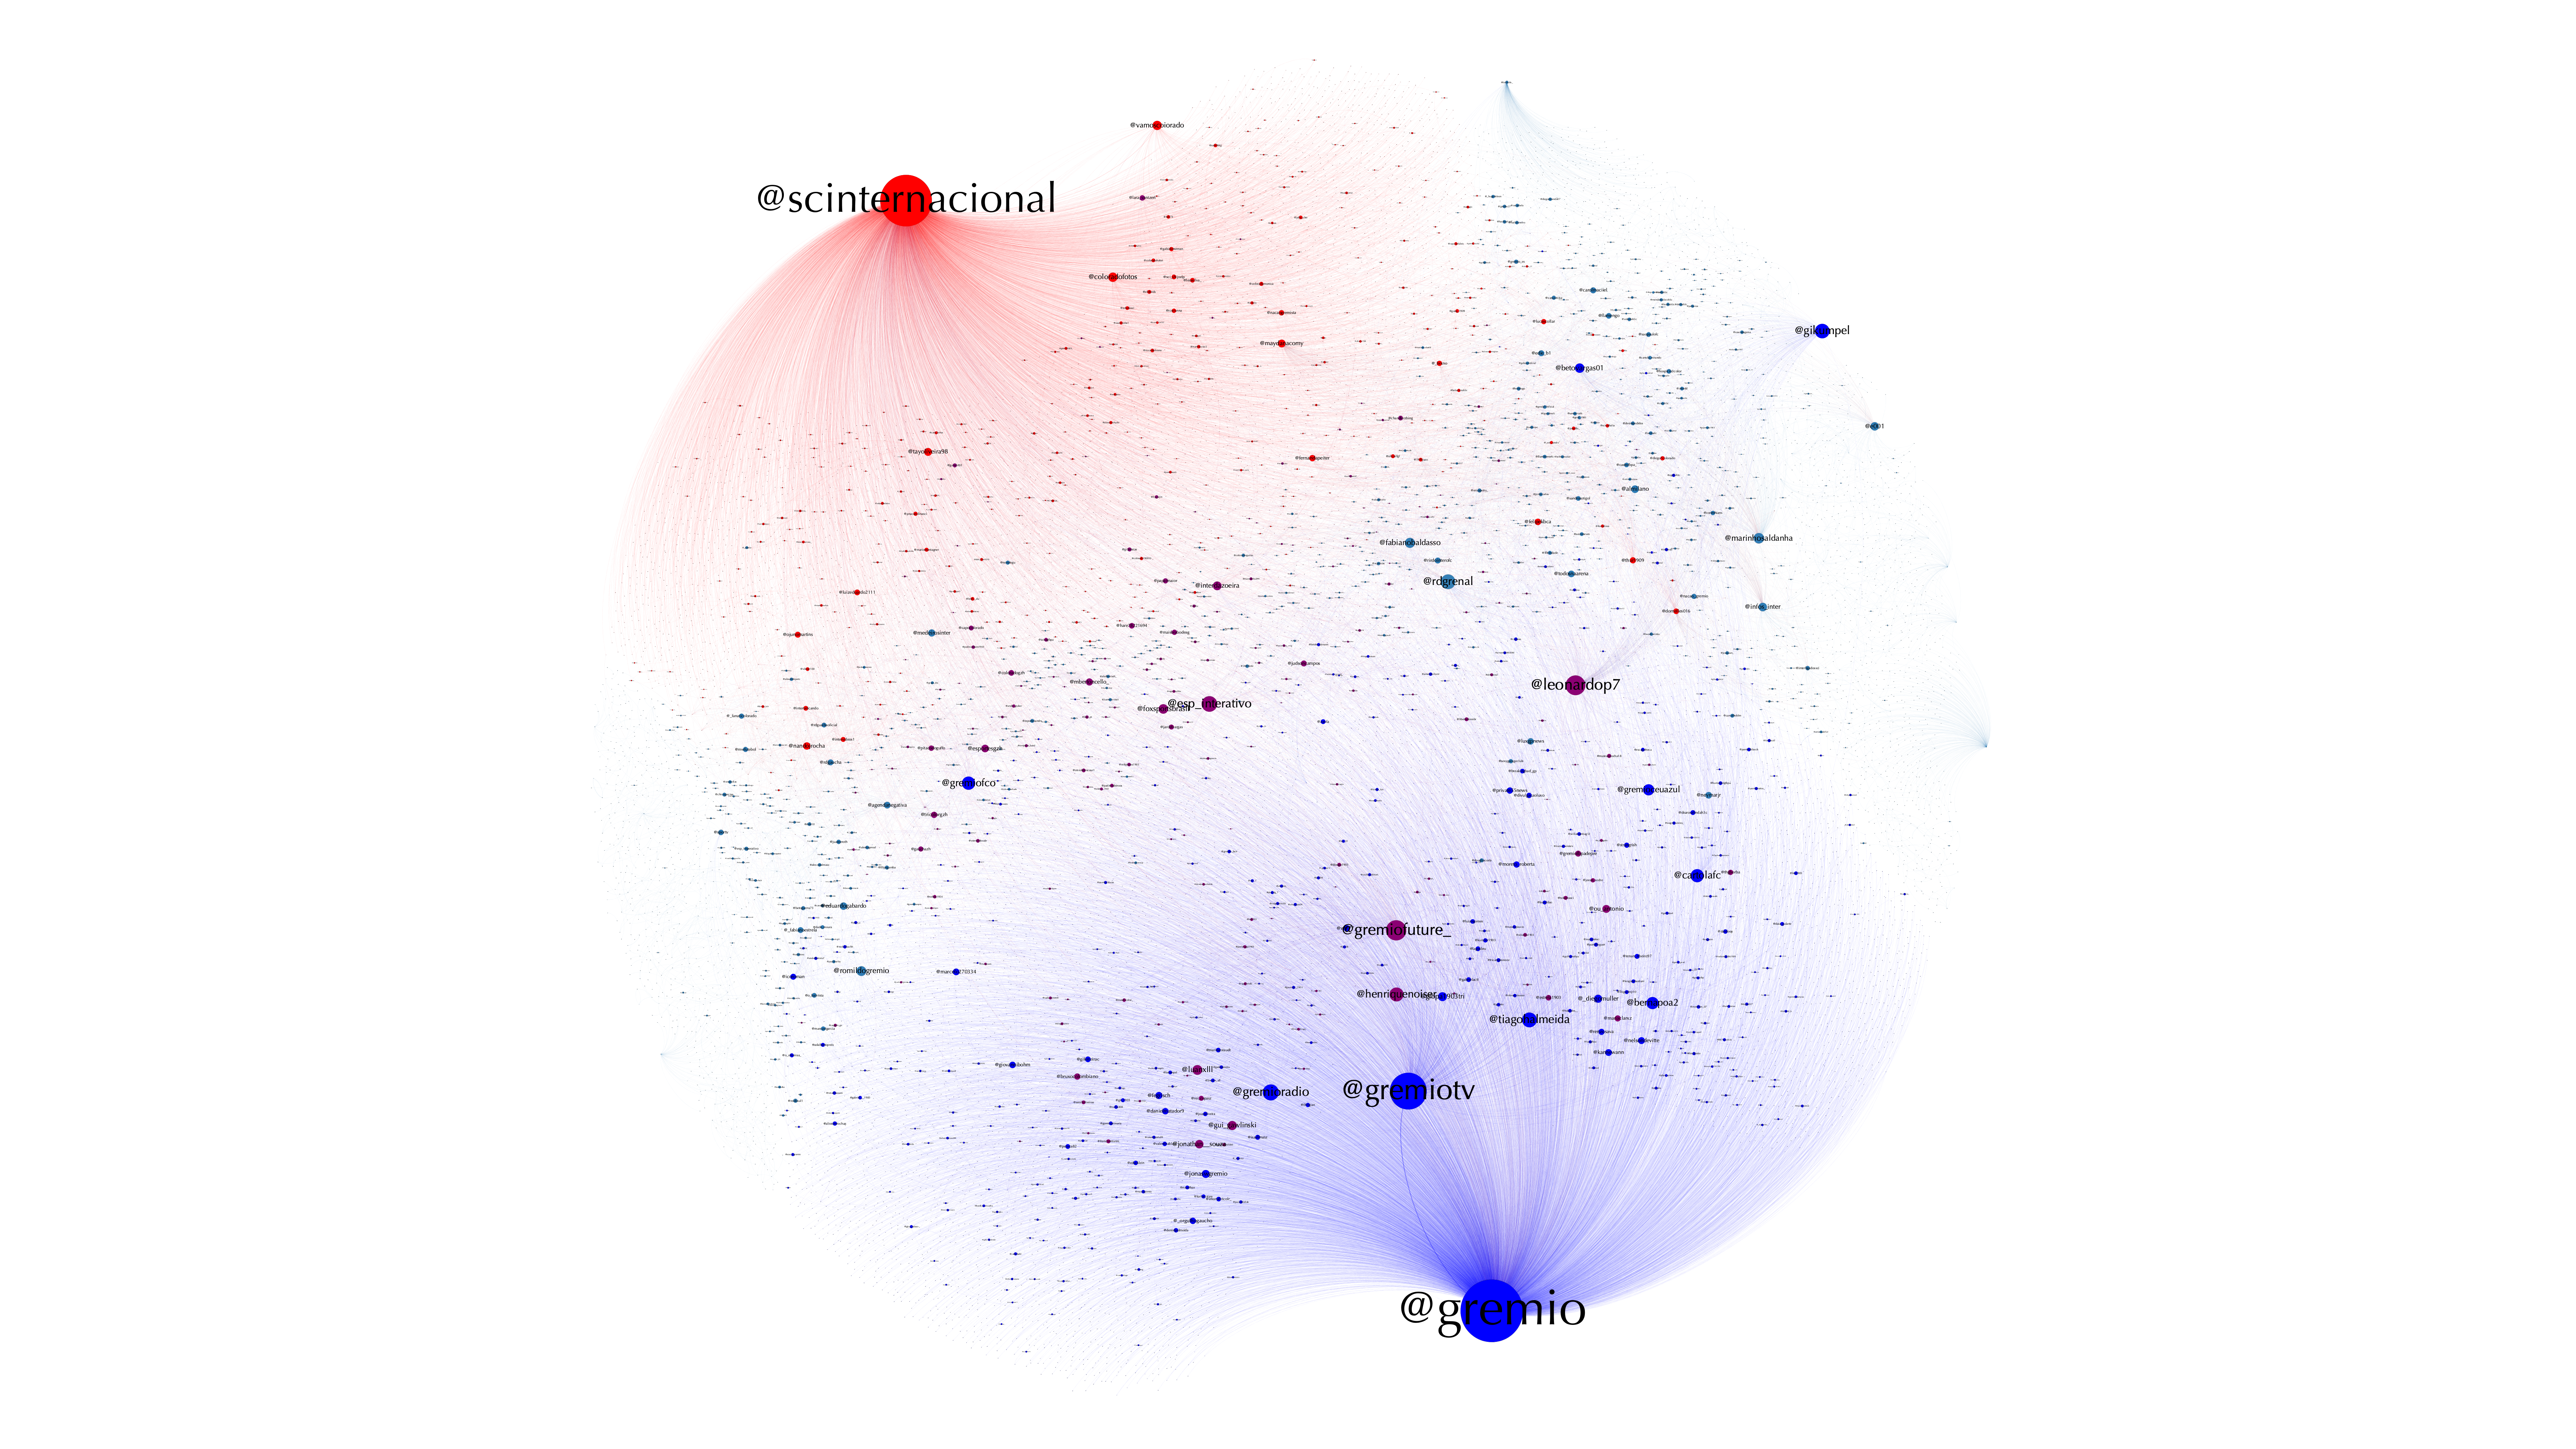 social network analysis showing traditional media roles in digitally disrupted sport media ecology. Social network analysis of Gremio vs Internacional derby in 2019